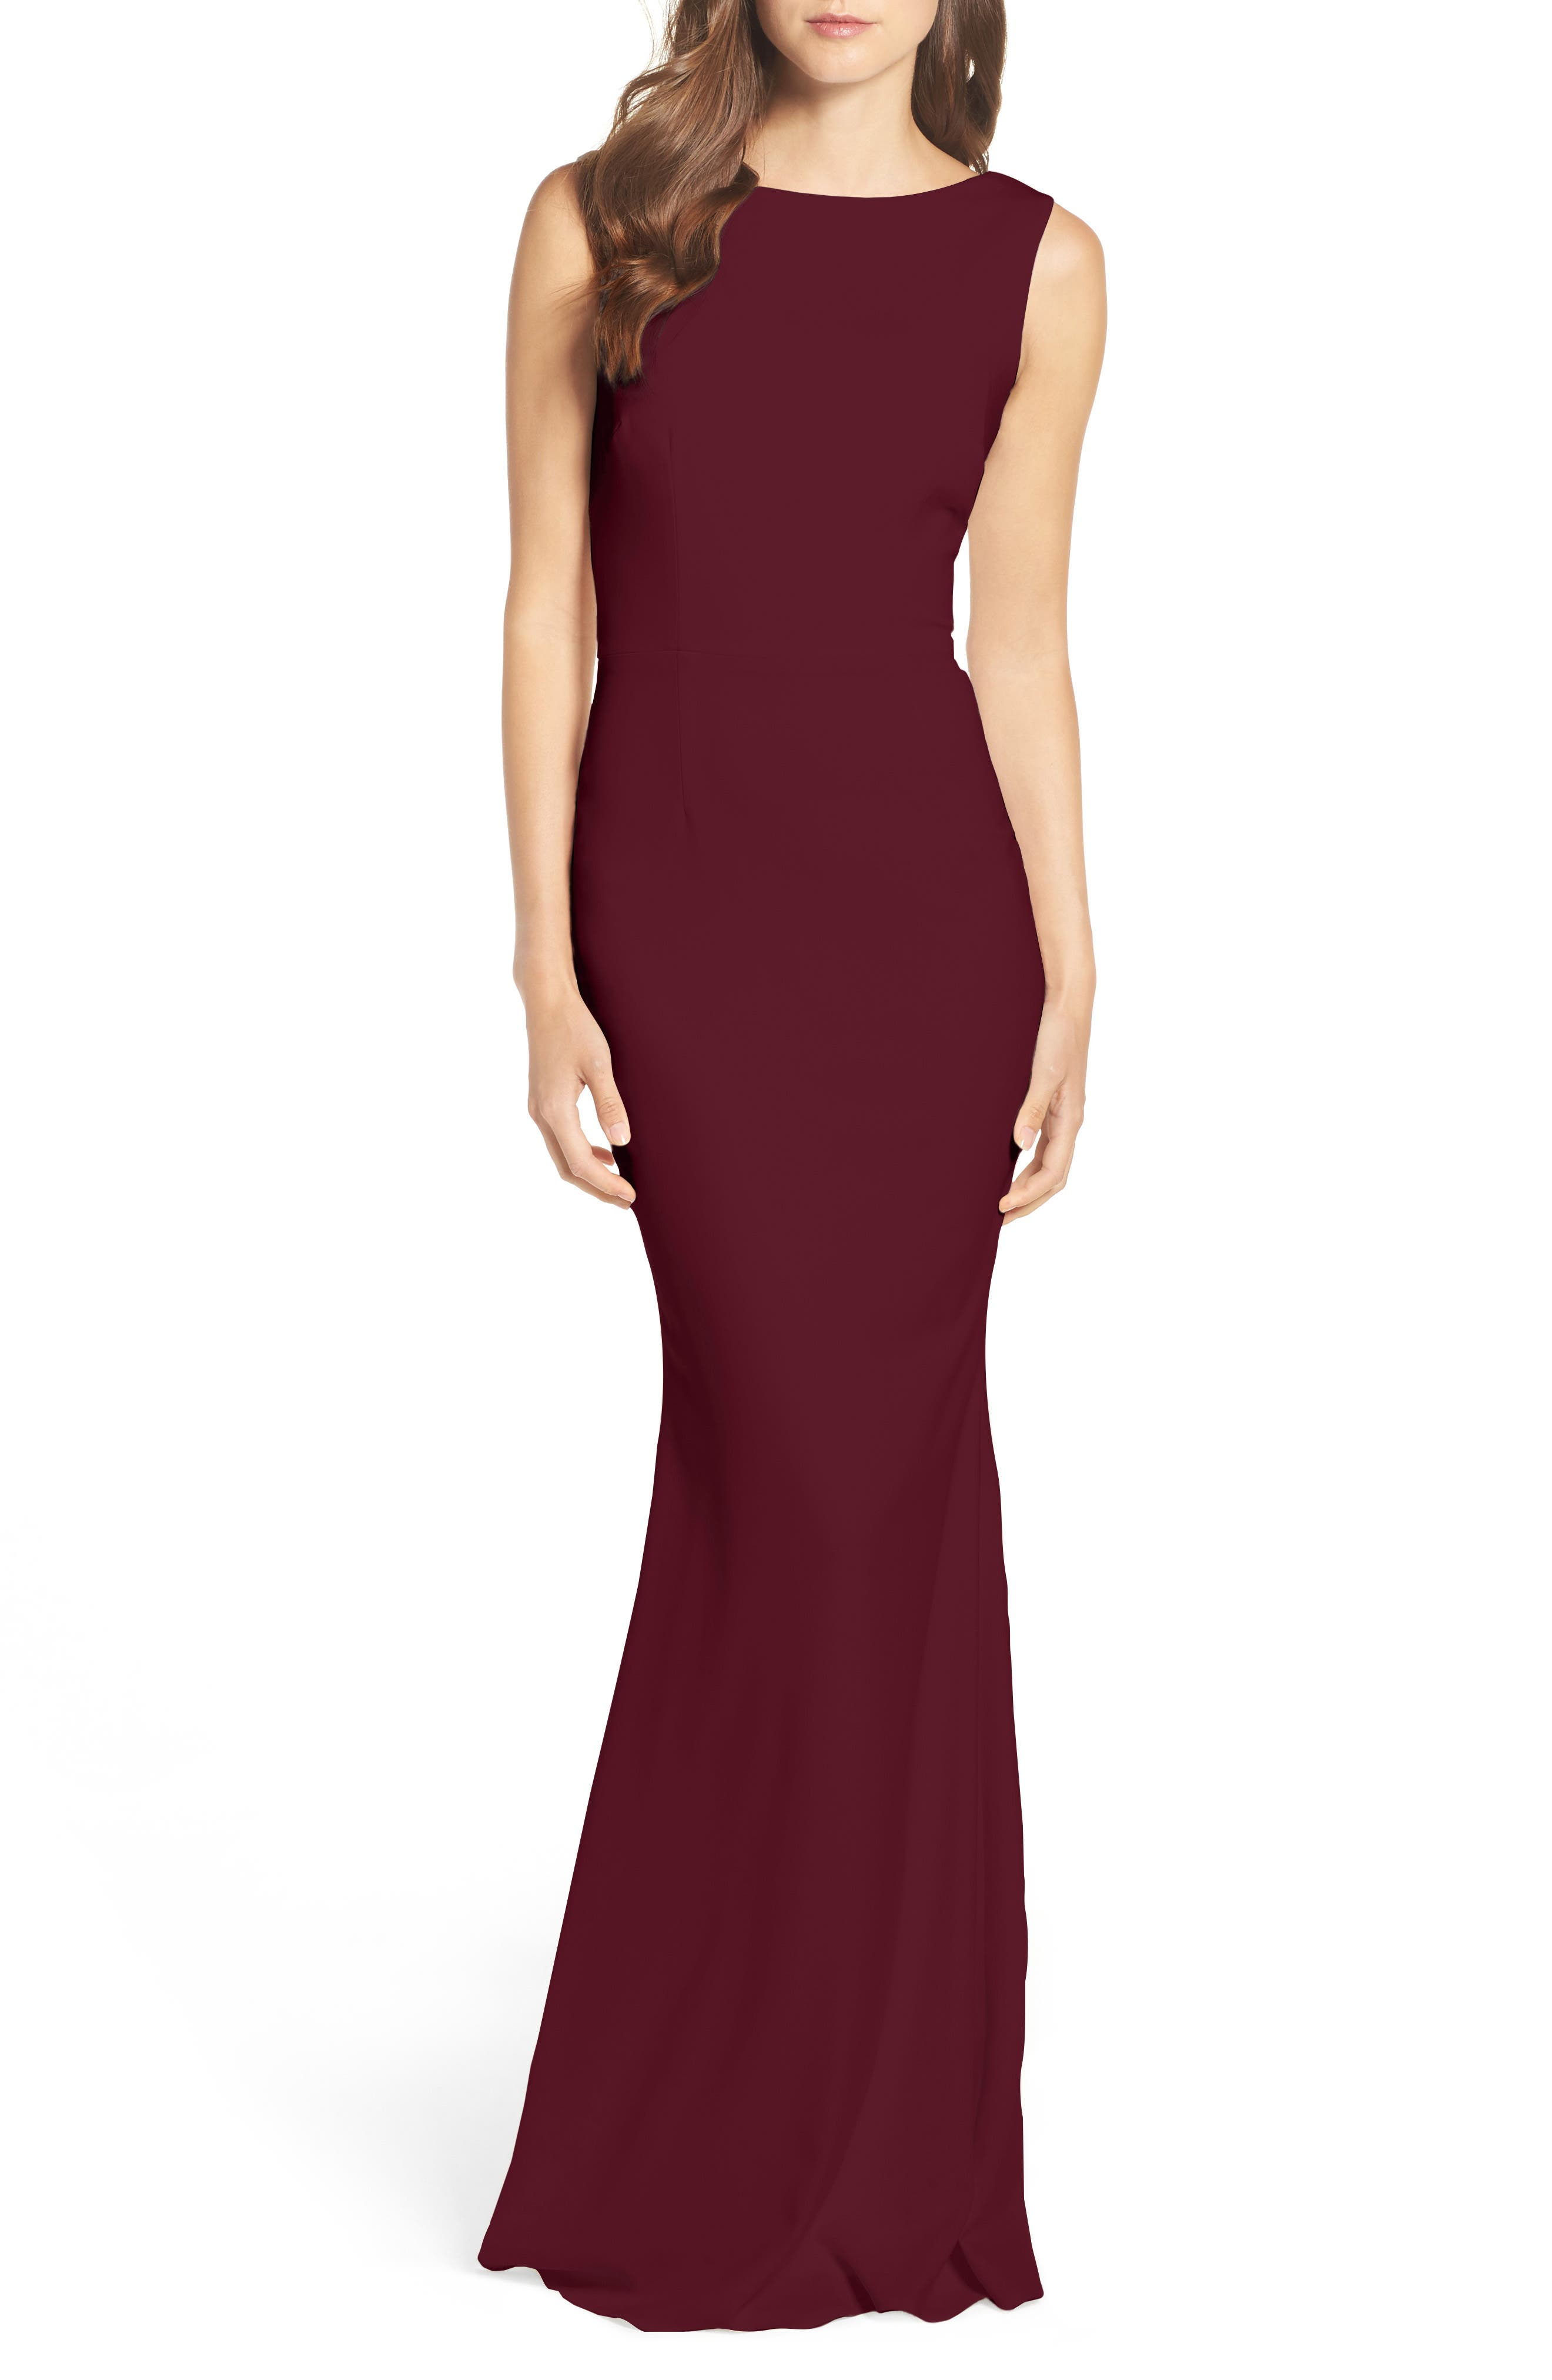 Katie May Vionnet Drape Back Crepe Gown, Red